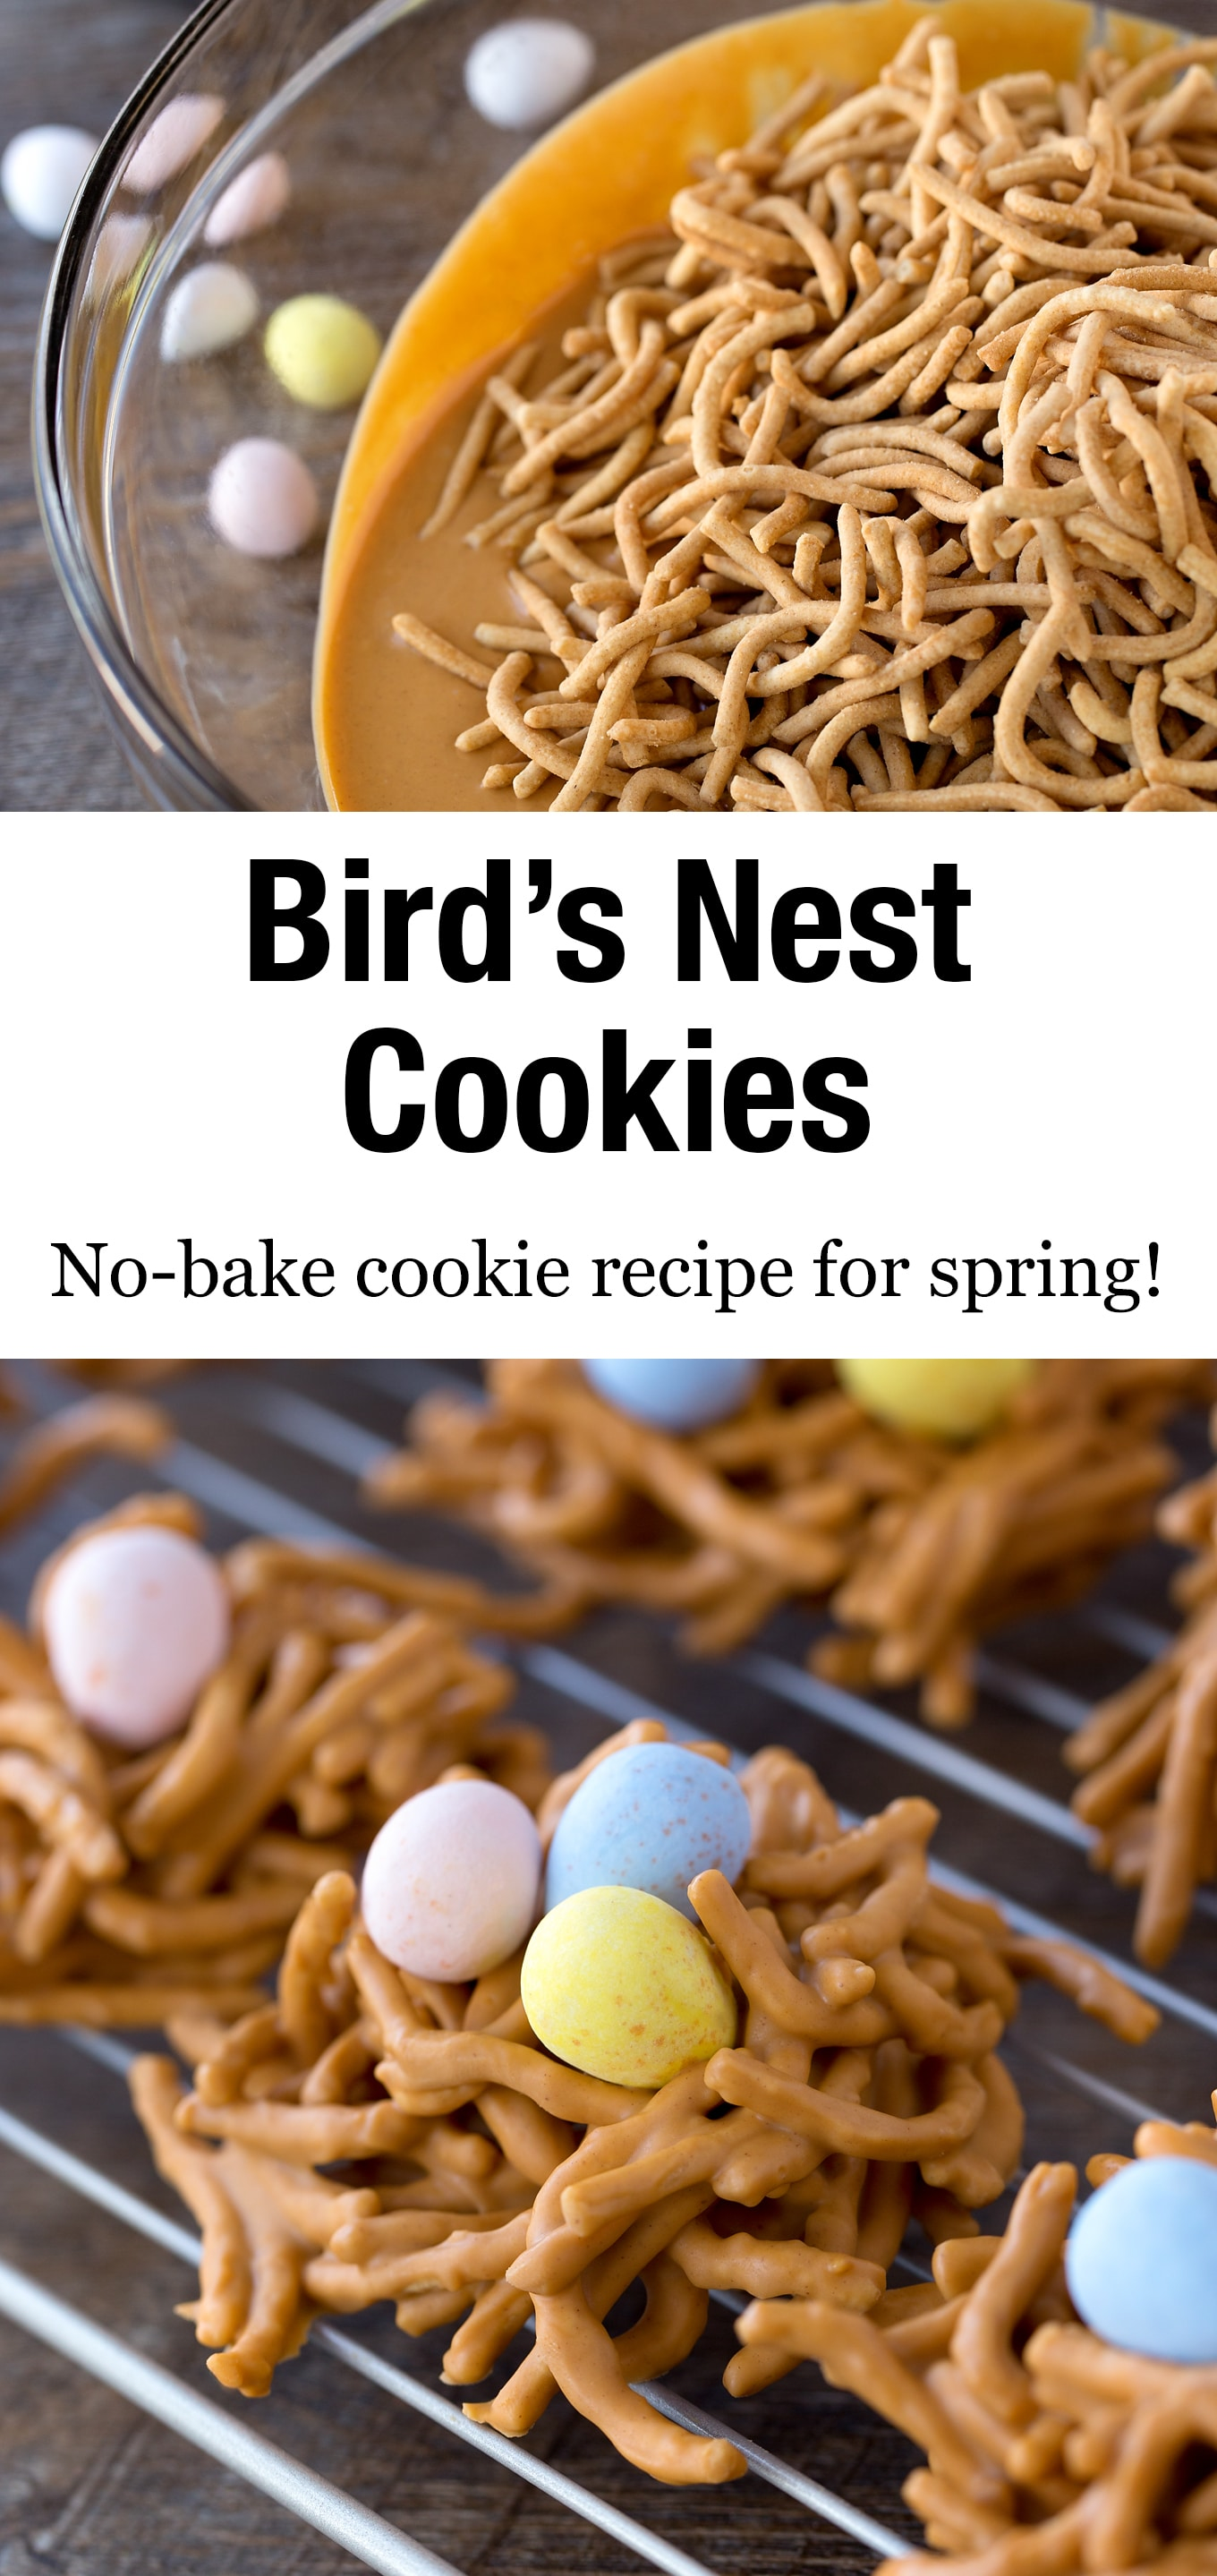 No-bake Bird's Nest Cookies, commonly known as Haystacks, are given a nest-inspired twist when decorated with creamy chocolate eggs. #birdsnestcookies #nobake #chowmein #cookierecipes via @firefliesandmudpies